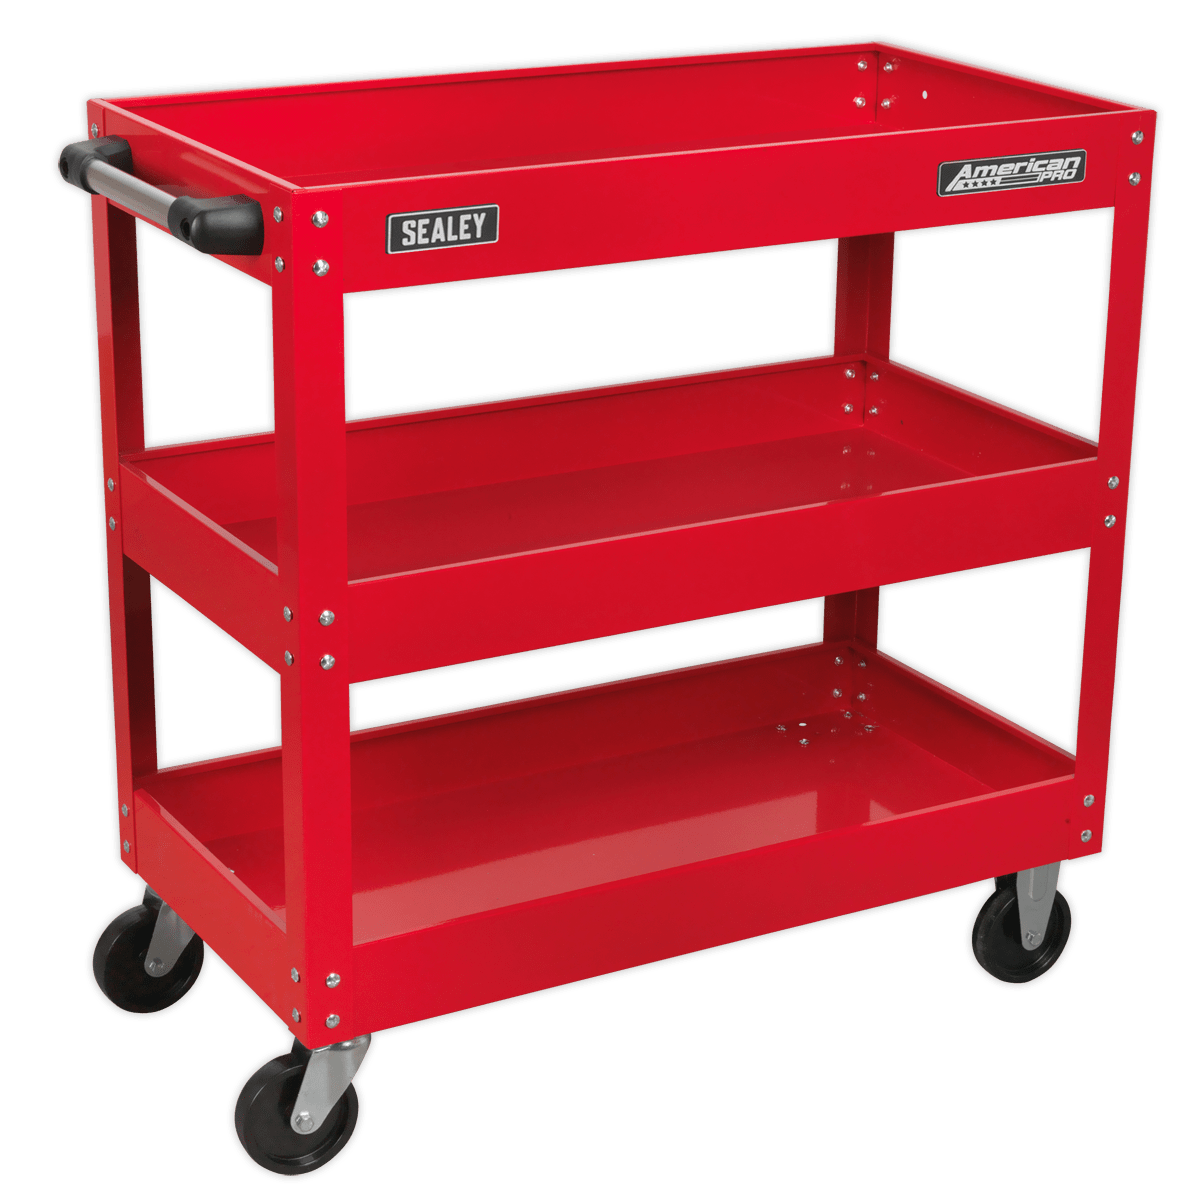 Sealey Workshop Trolley 3-Level Heavy-Duty CX108 | Ideal for regularly used workshop items such as body repair kits, power tools and bulky equipment too big for a tool chest.